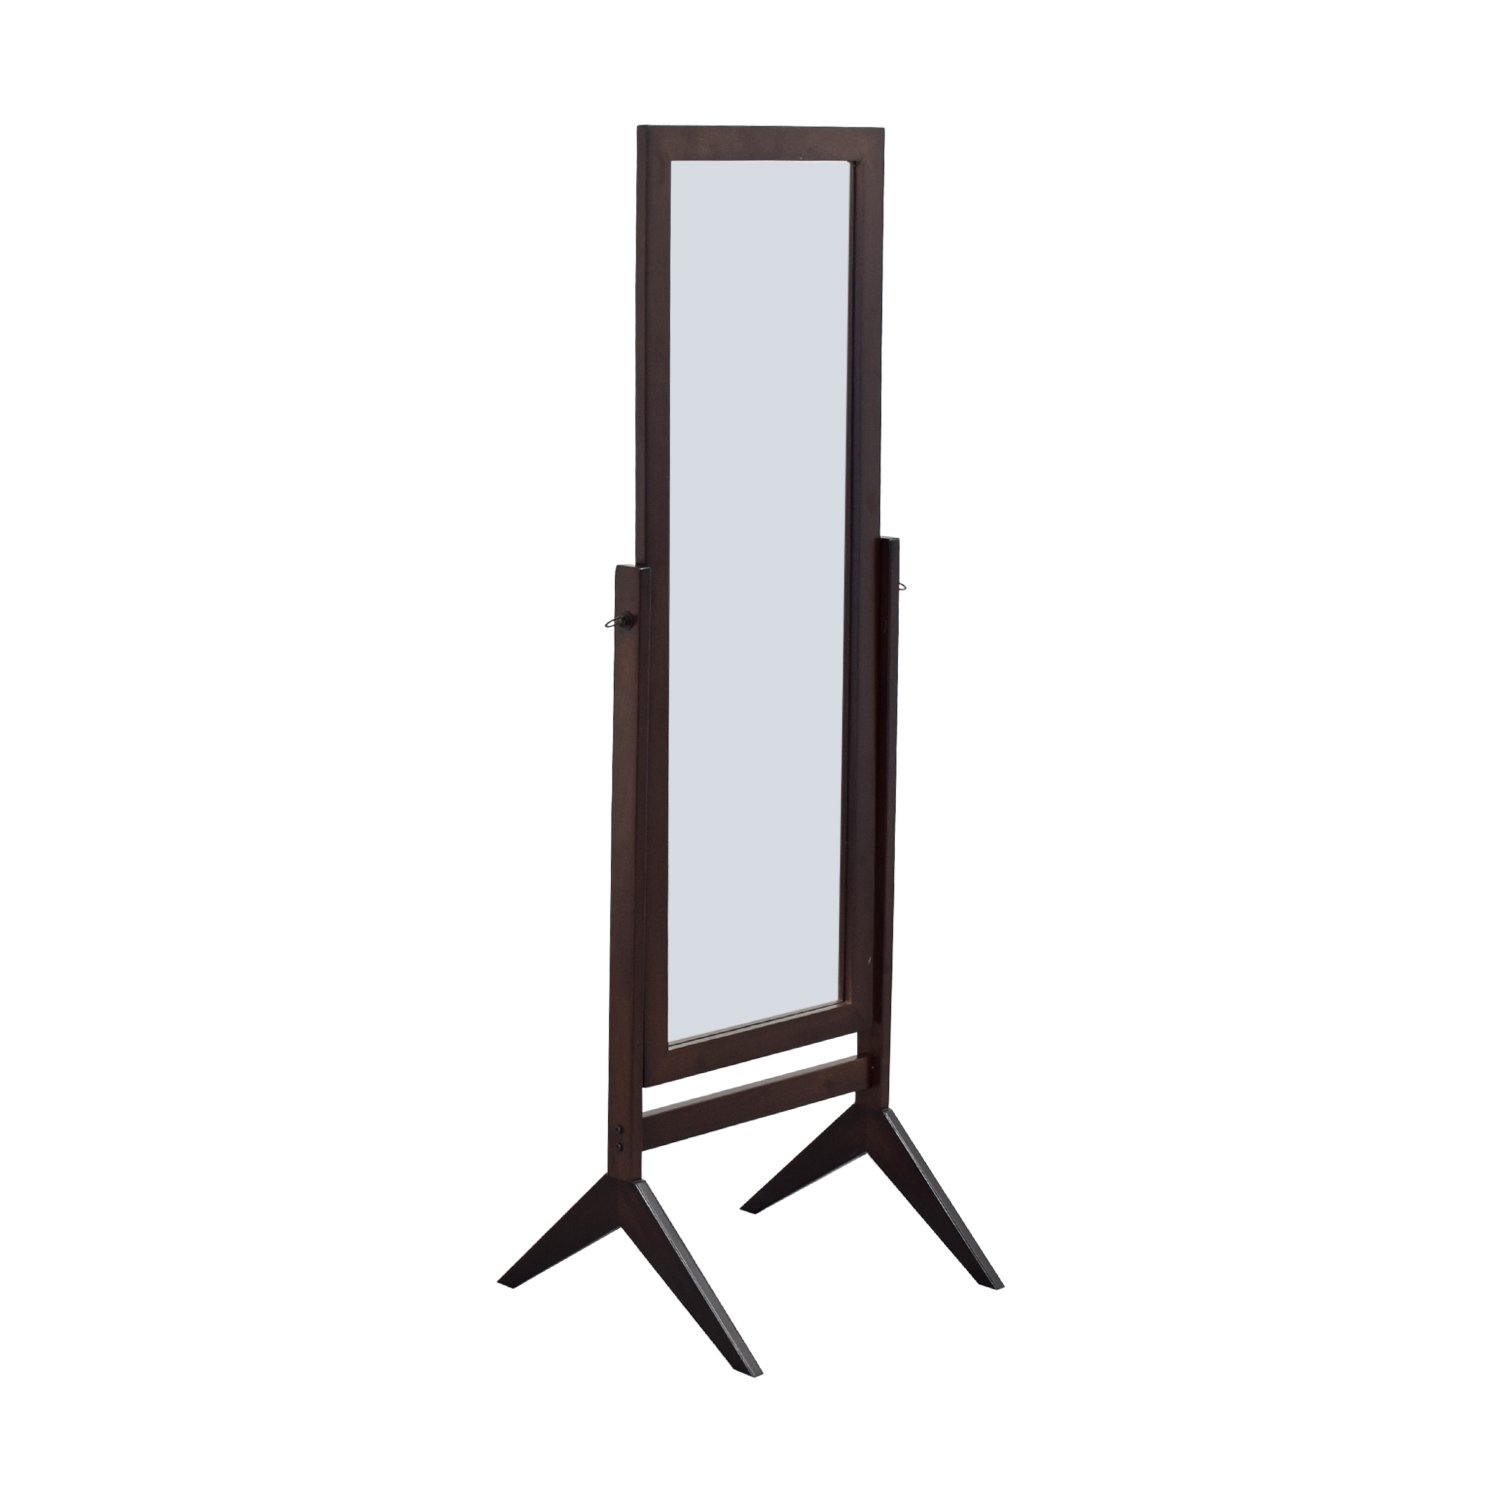 shop Bed Bath & Beyond Bed Bath & Beyond Brown Cheval Floor Mirror online